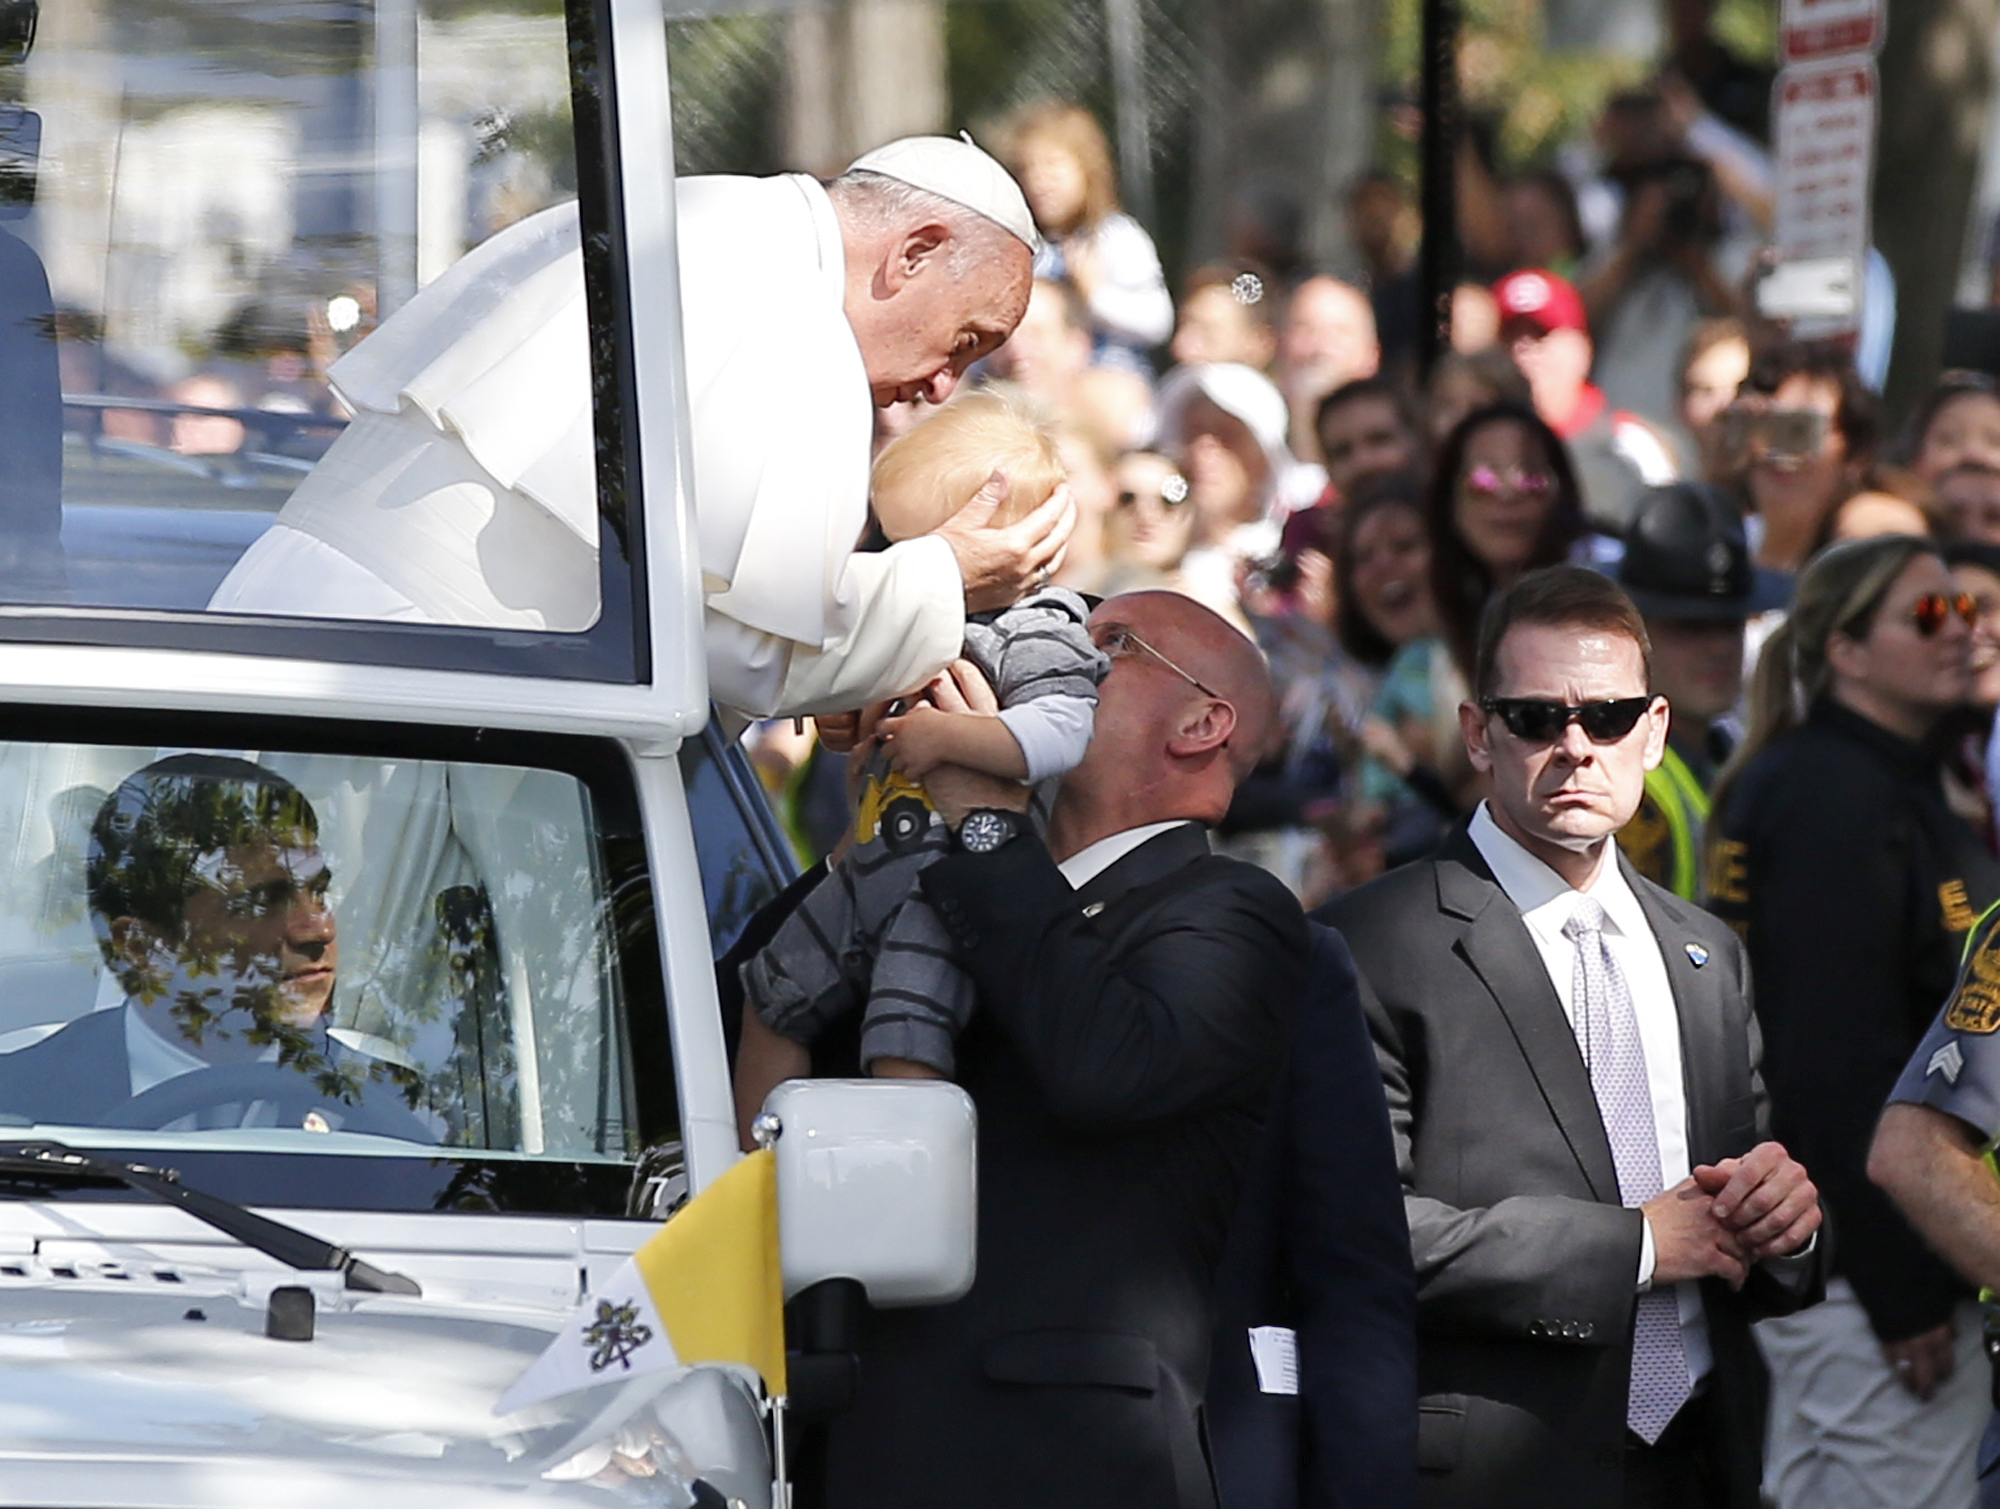 Preparing security for a papal kiss